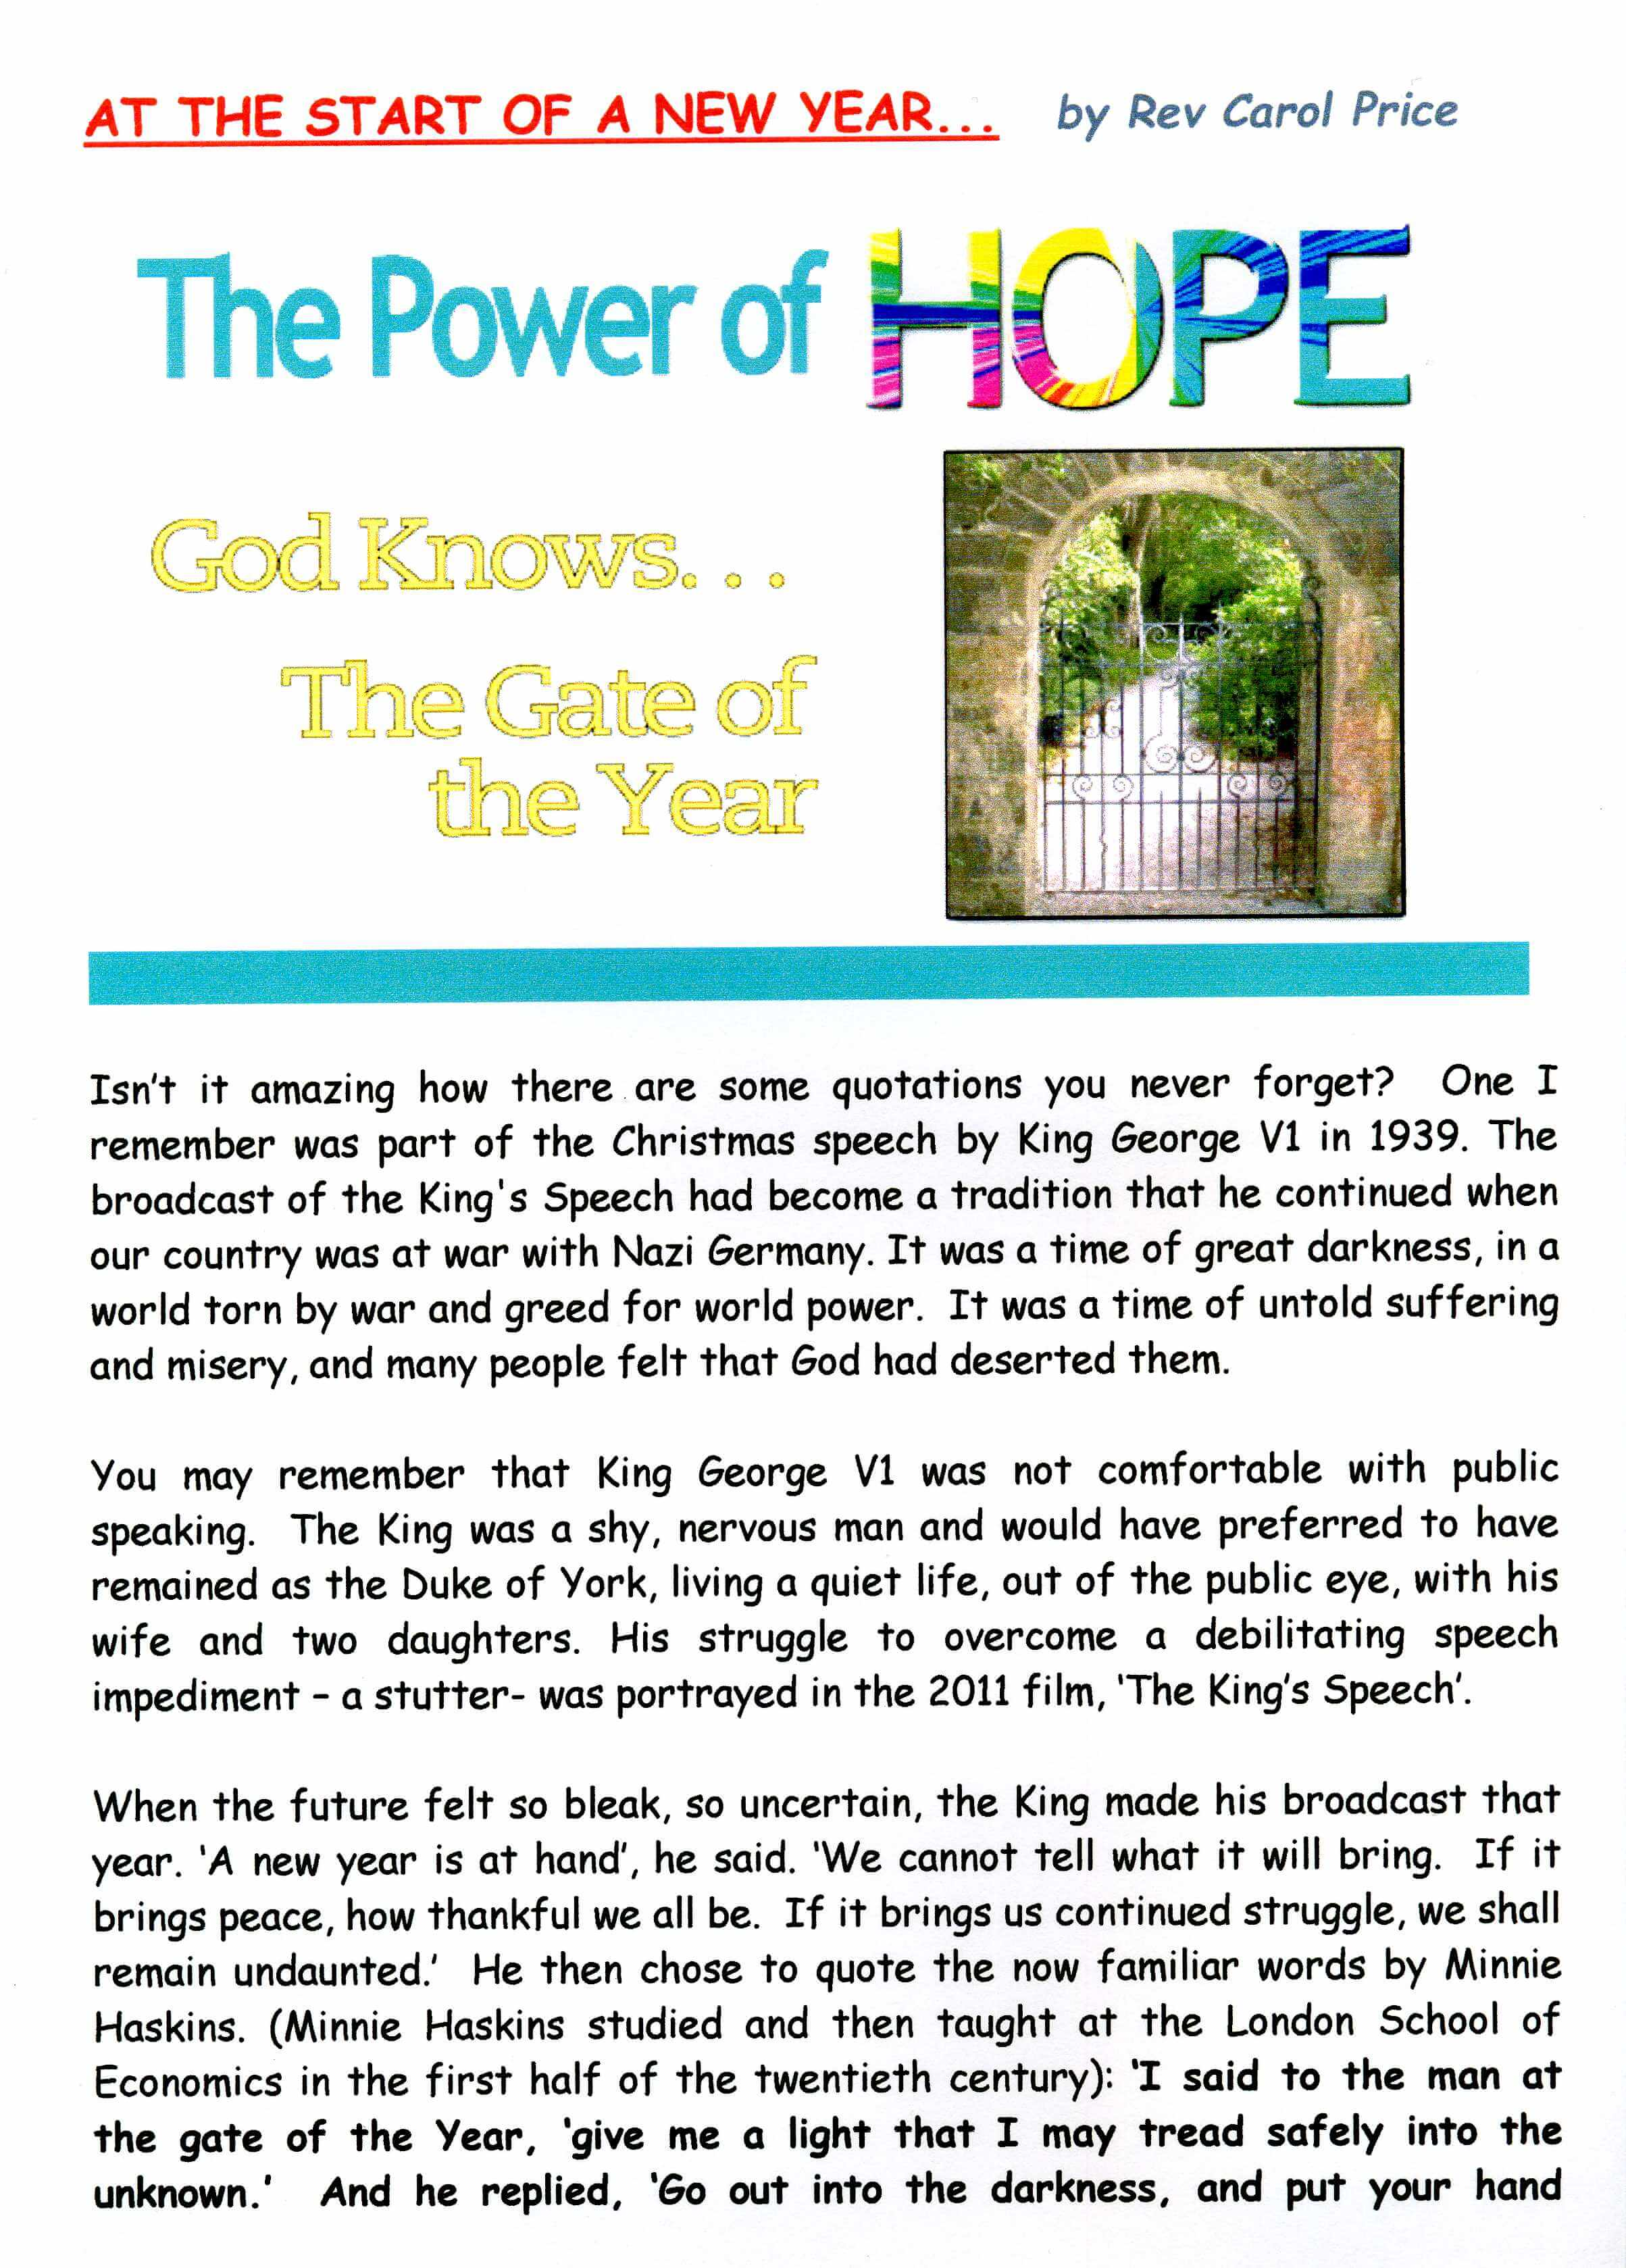 The Power of Hope for 2016